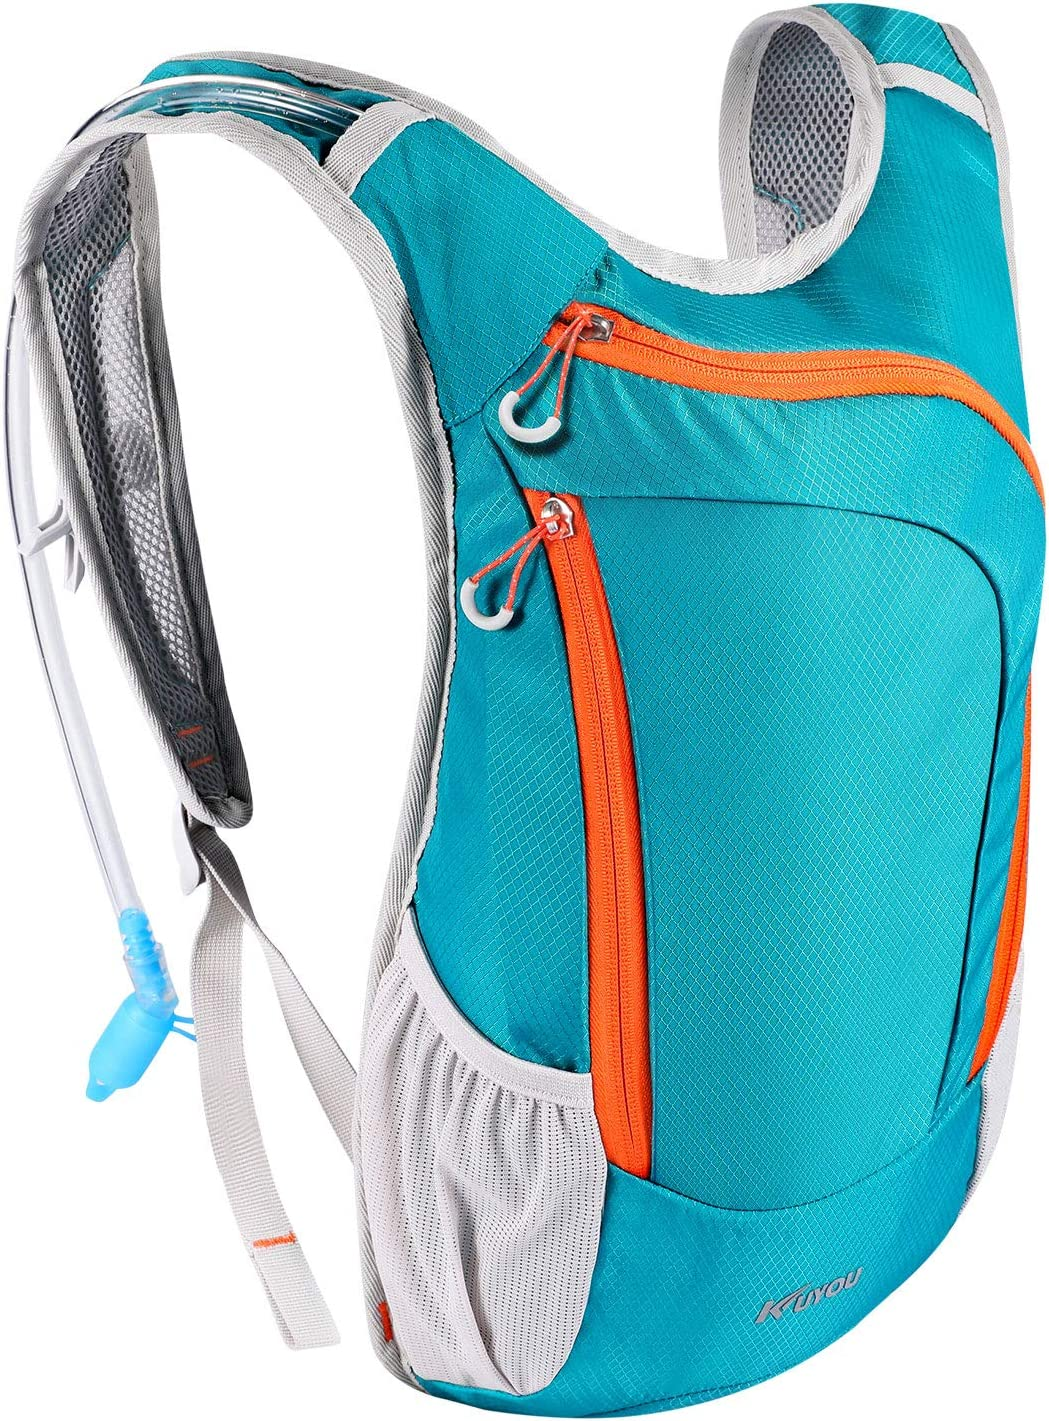 KUYOU Hydration Pack,Hydration Backpack with 2L Hydration Bladder Lightweight Insulation Water Pack for Running Hiking Riding Camping Cycling Climbing Fits Men Women